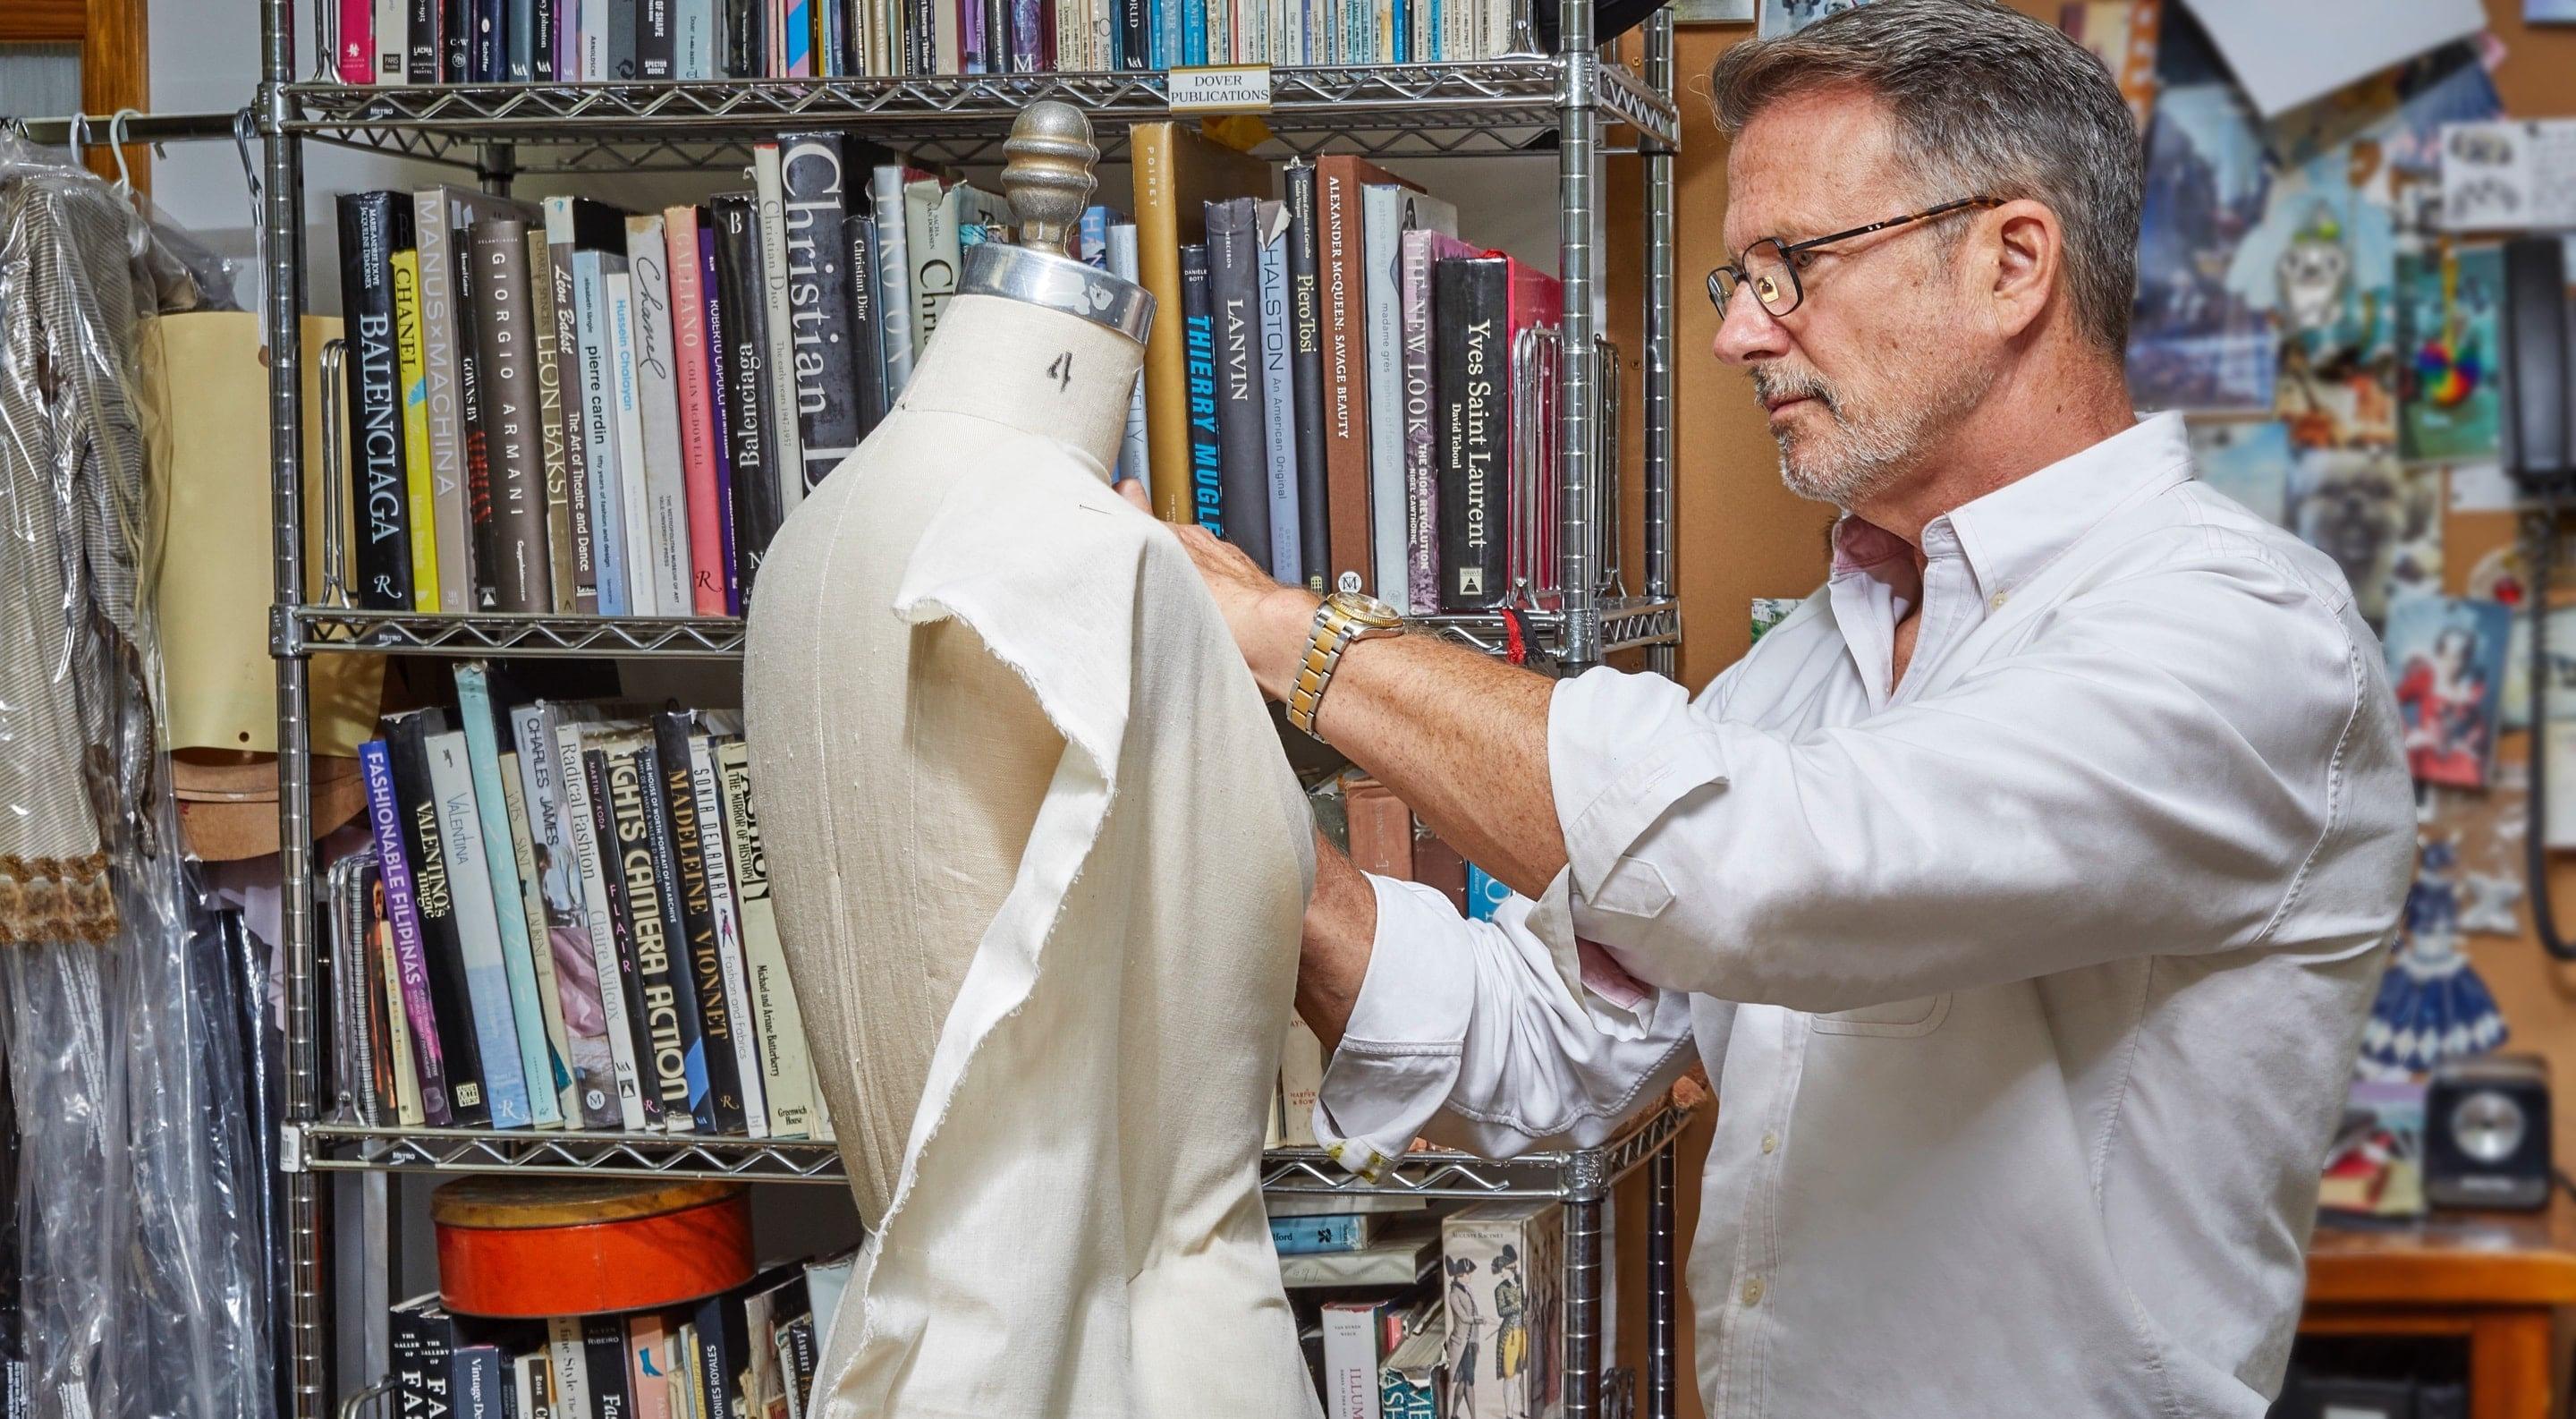 Eric Winterling adjusting fabric on a mannequin with bookshelf behind him.